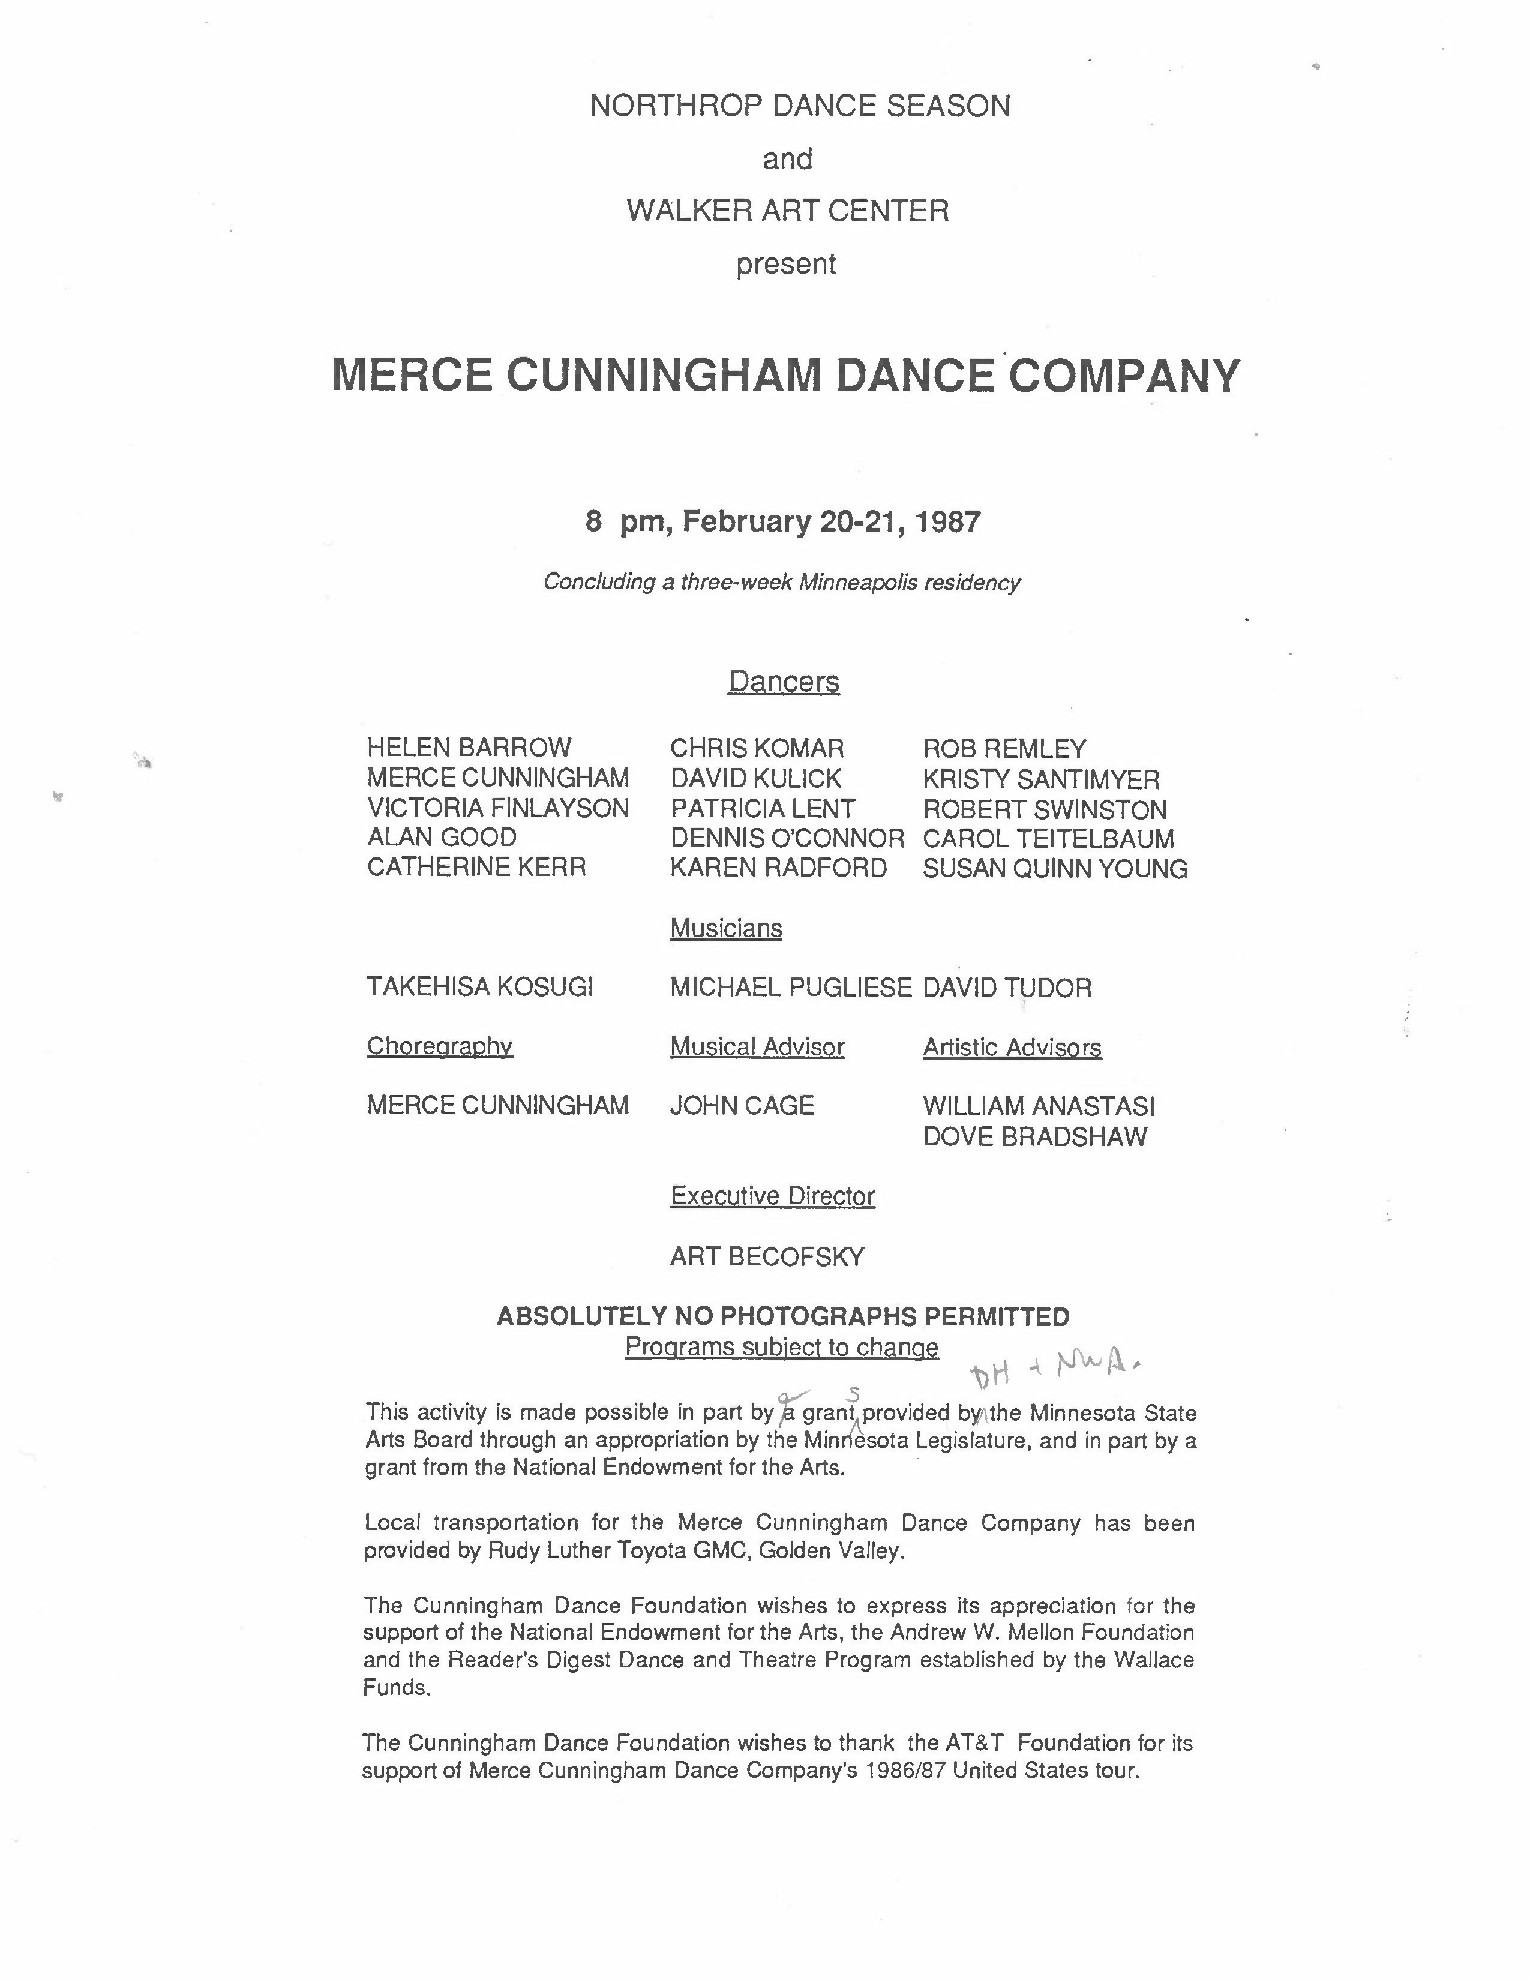 Draft of the program for the 1987 MCDC performance at Northrup, including Fabrications